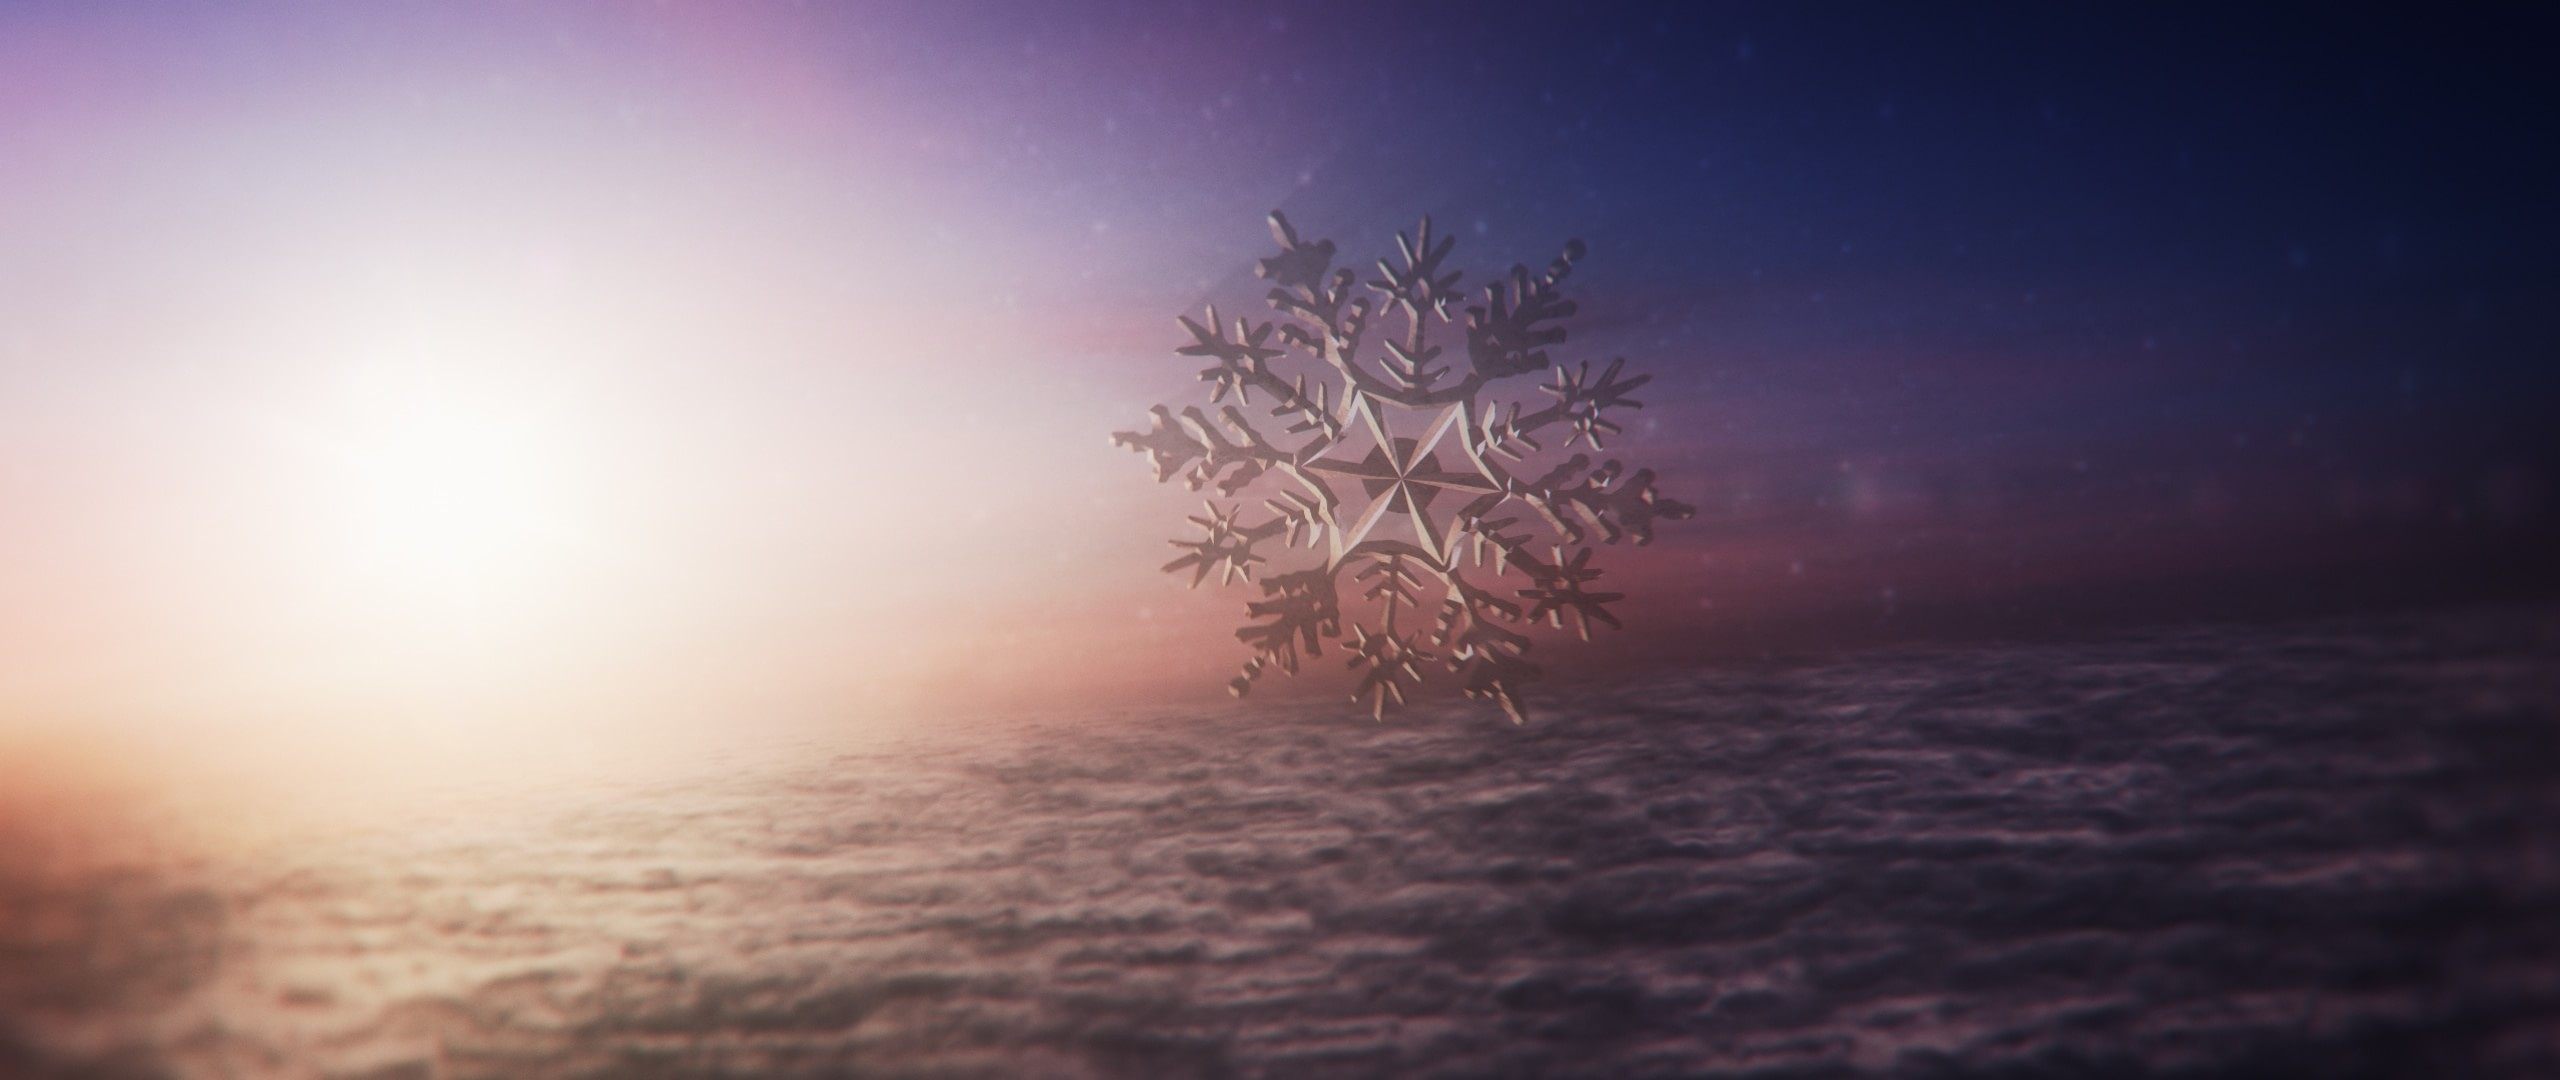 The CG Sunset we see in the Christmas video